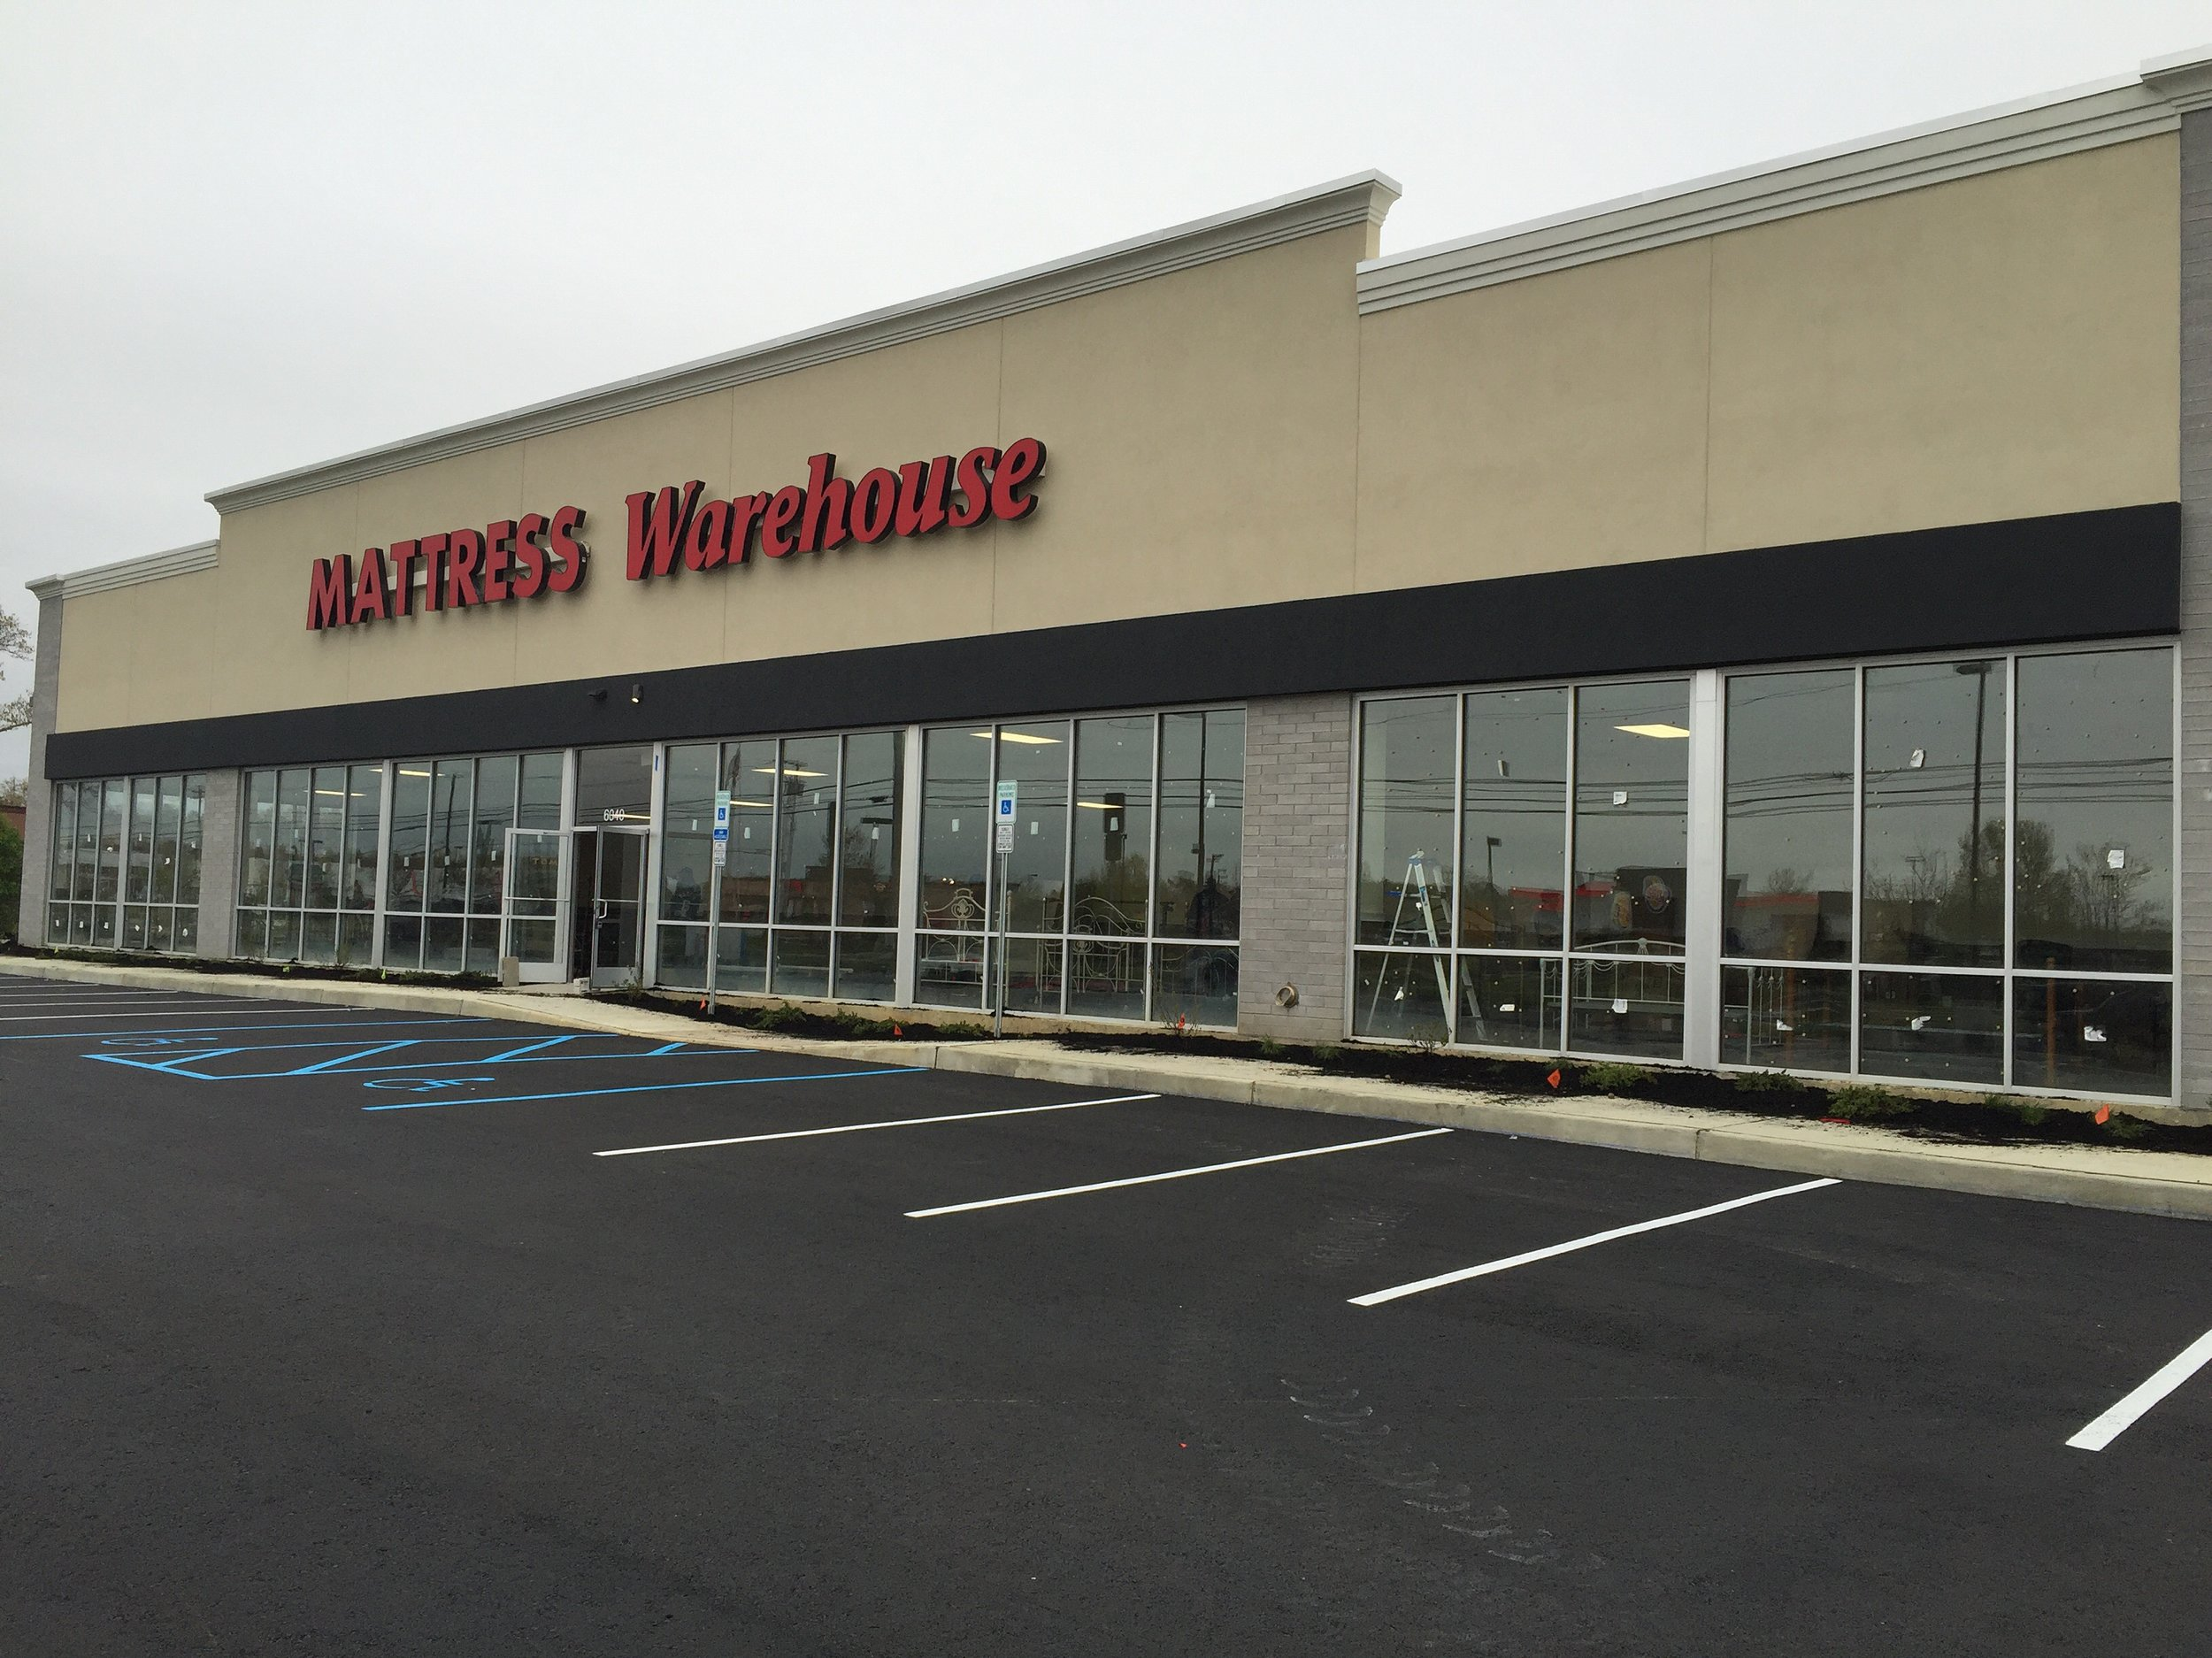 Mattress Warehouse - Egg Harbor Township, New Jersey